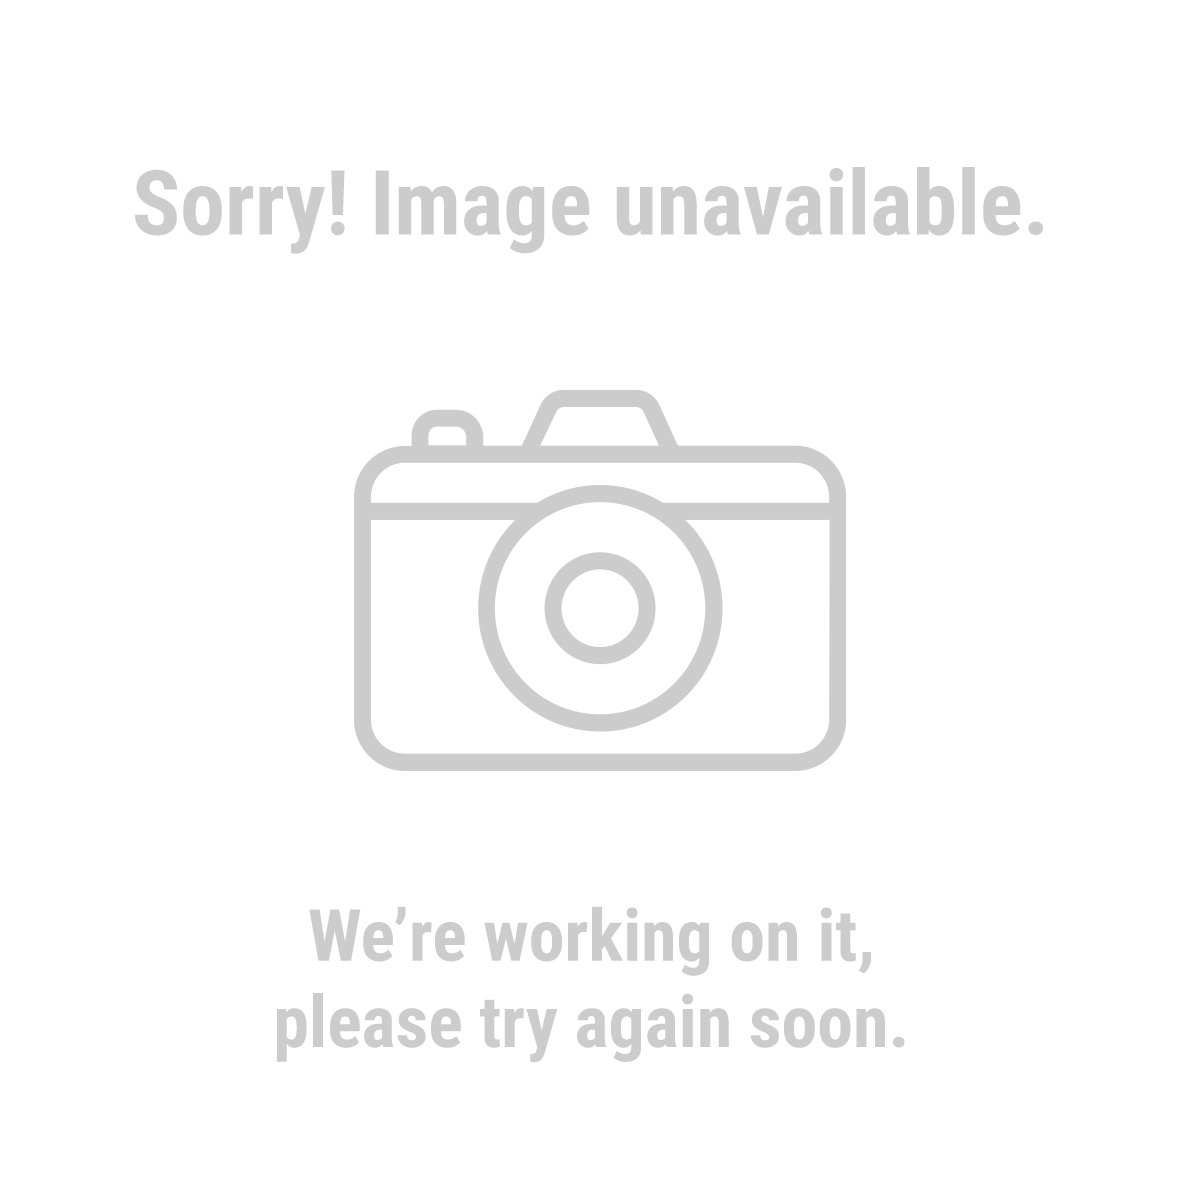 U.S. General 62563 Multipurpose Workbench with Cabinet Light